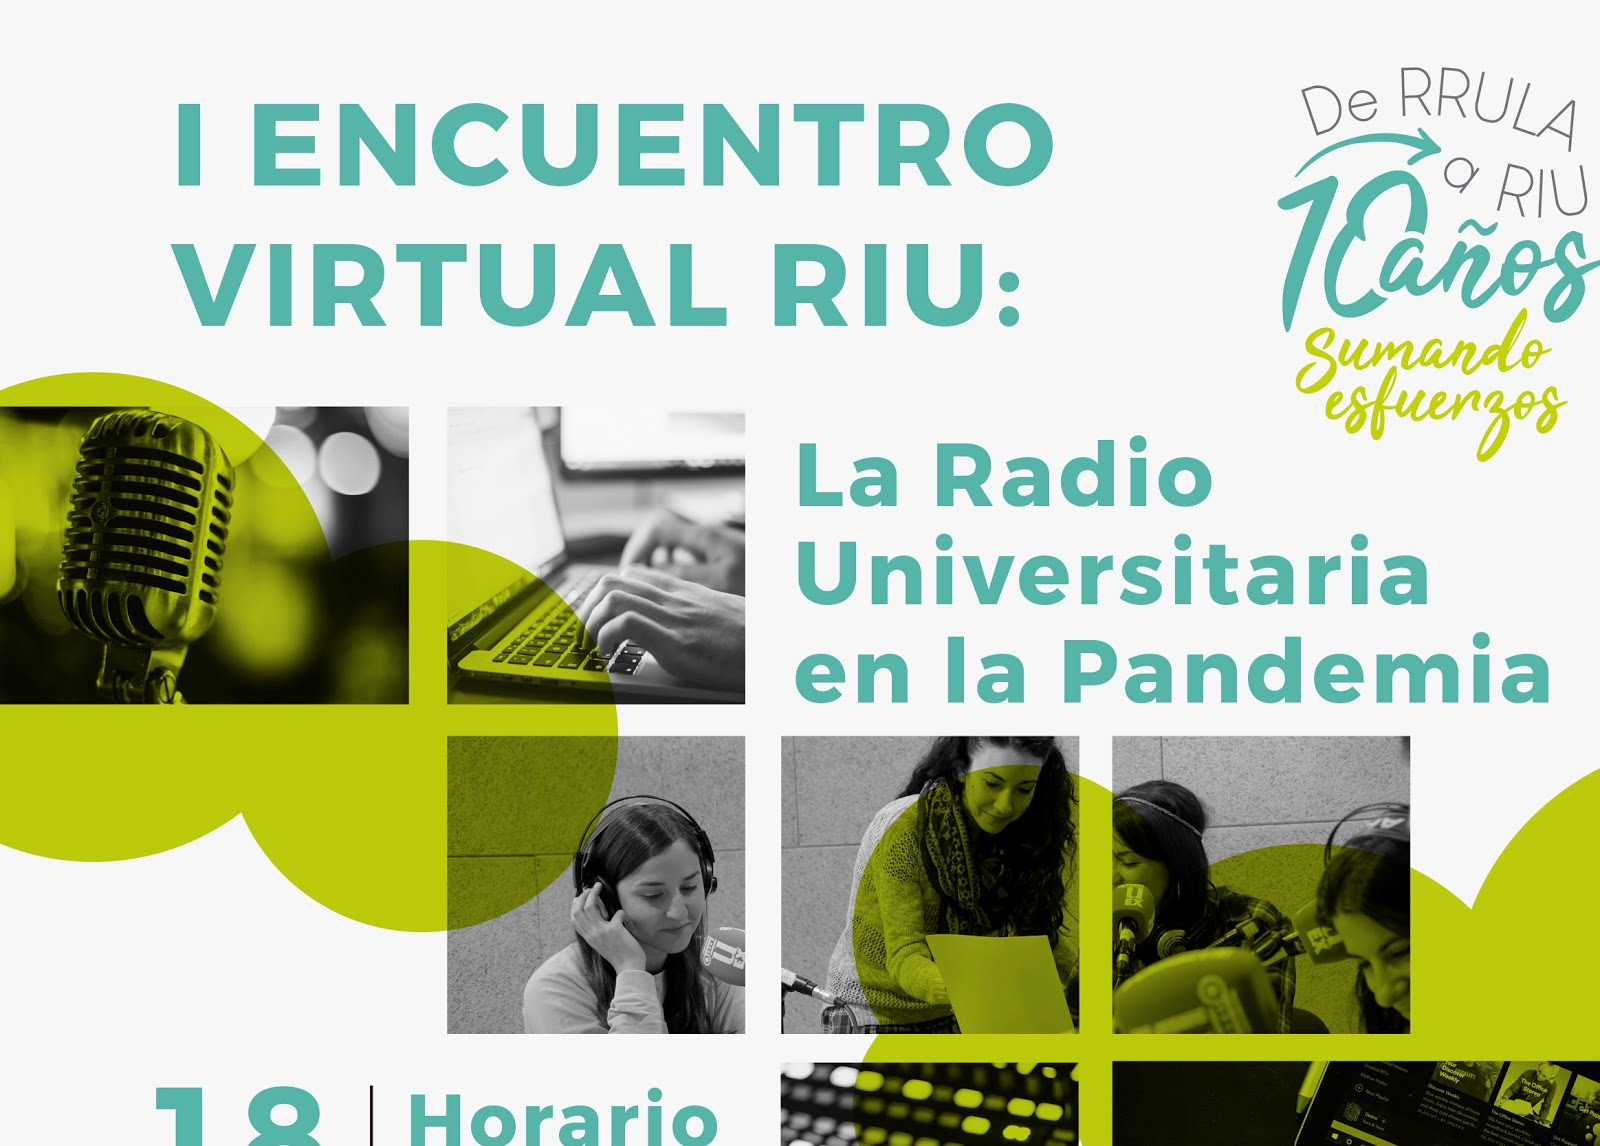 RADIOS UNIVERSITARIAS, I ENCUENTRO VIRTUAL